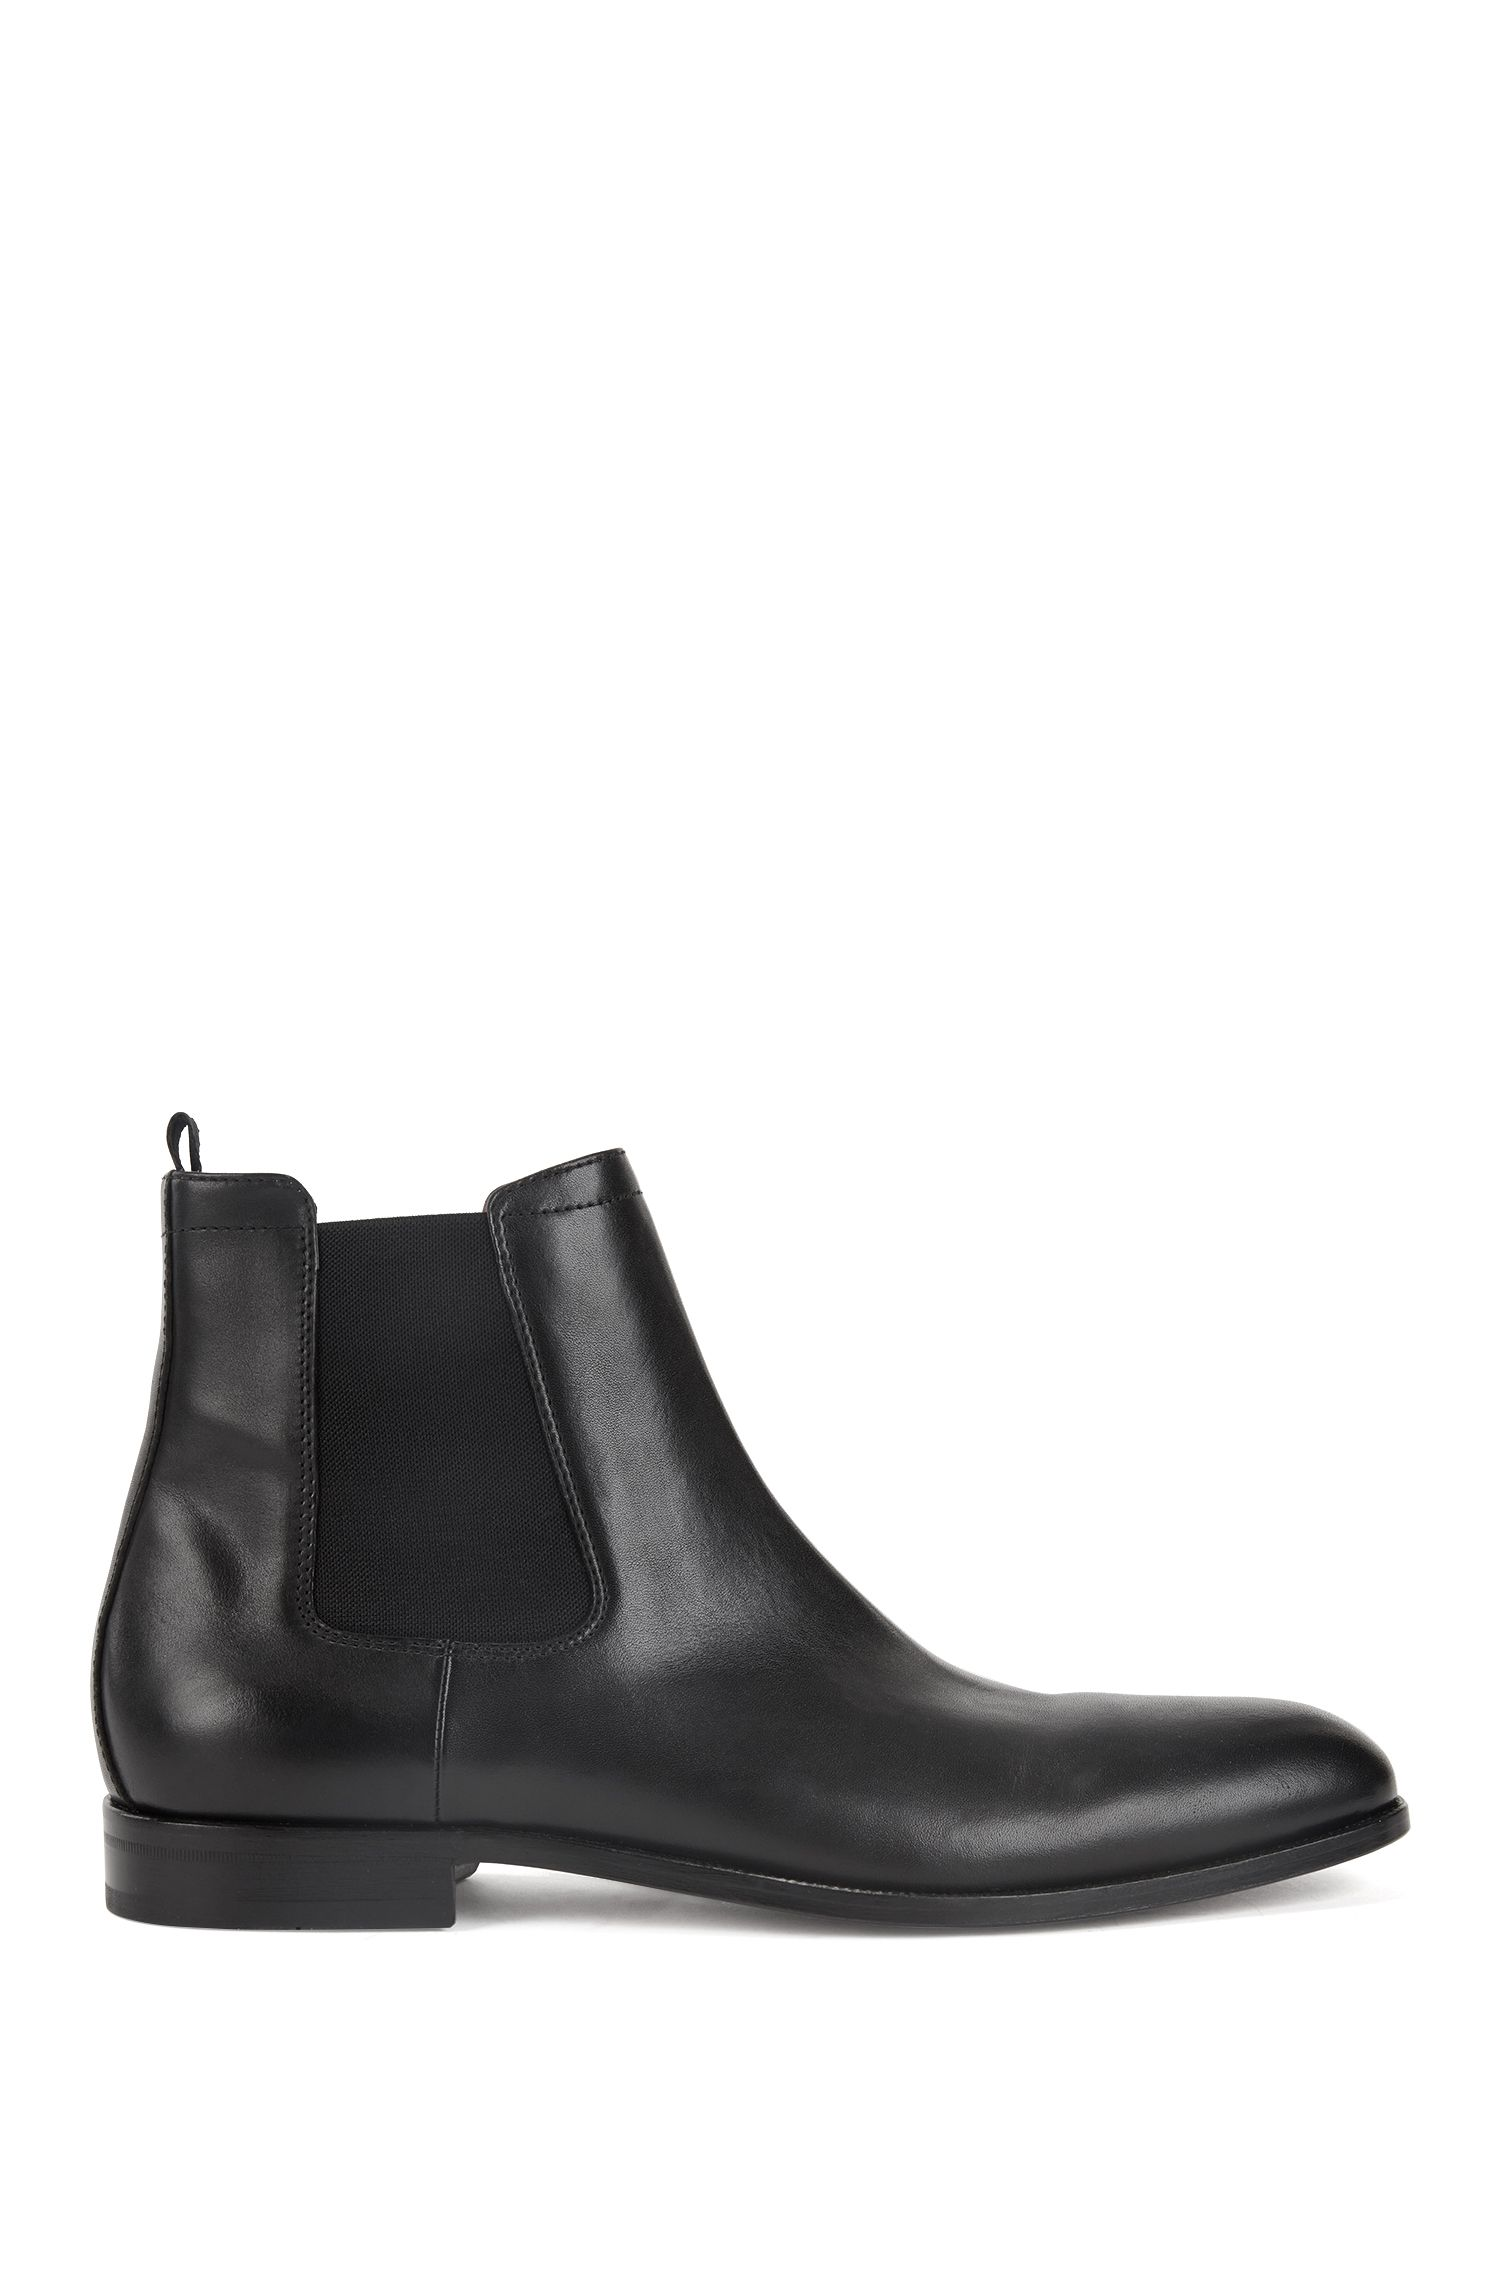 Italian-made Chelsea boots with calf-leather uppers